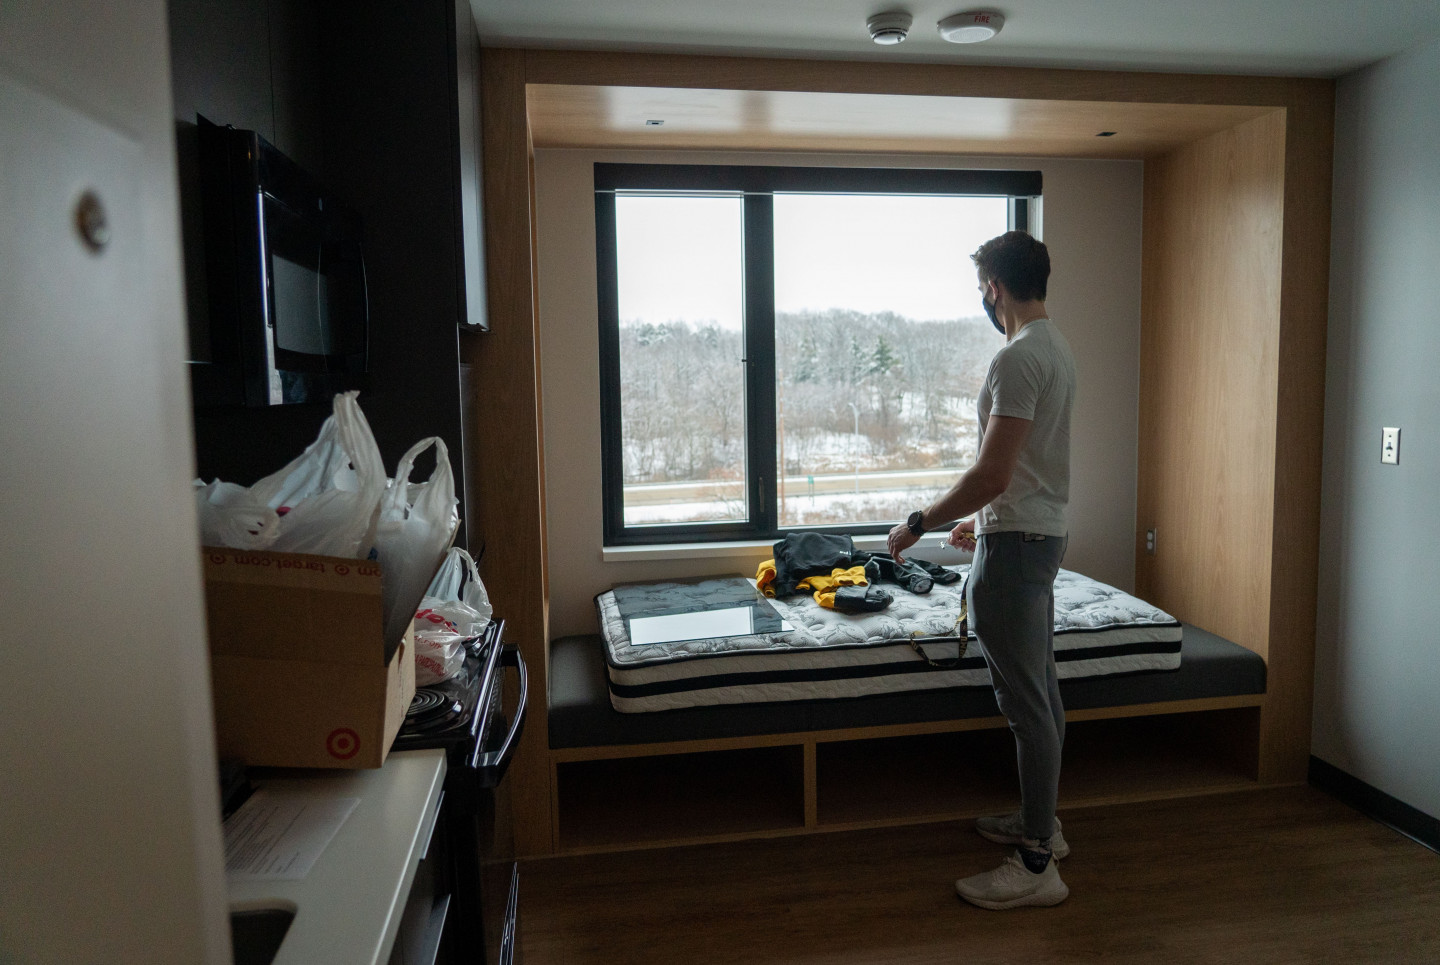 A student stands by a large window in his apartment.